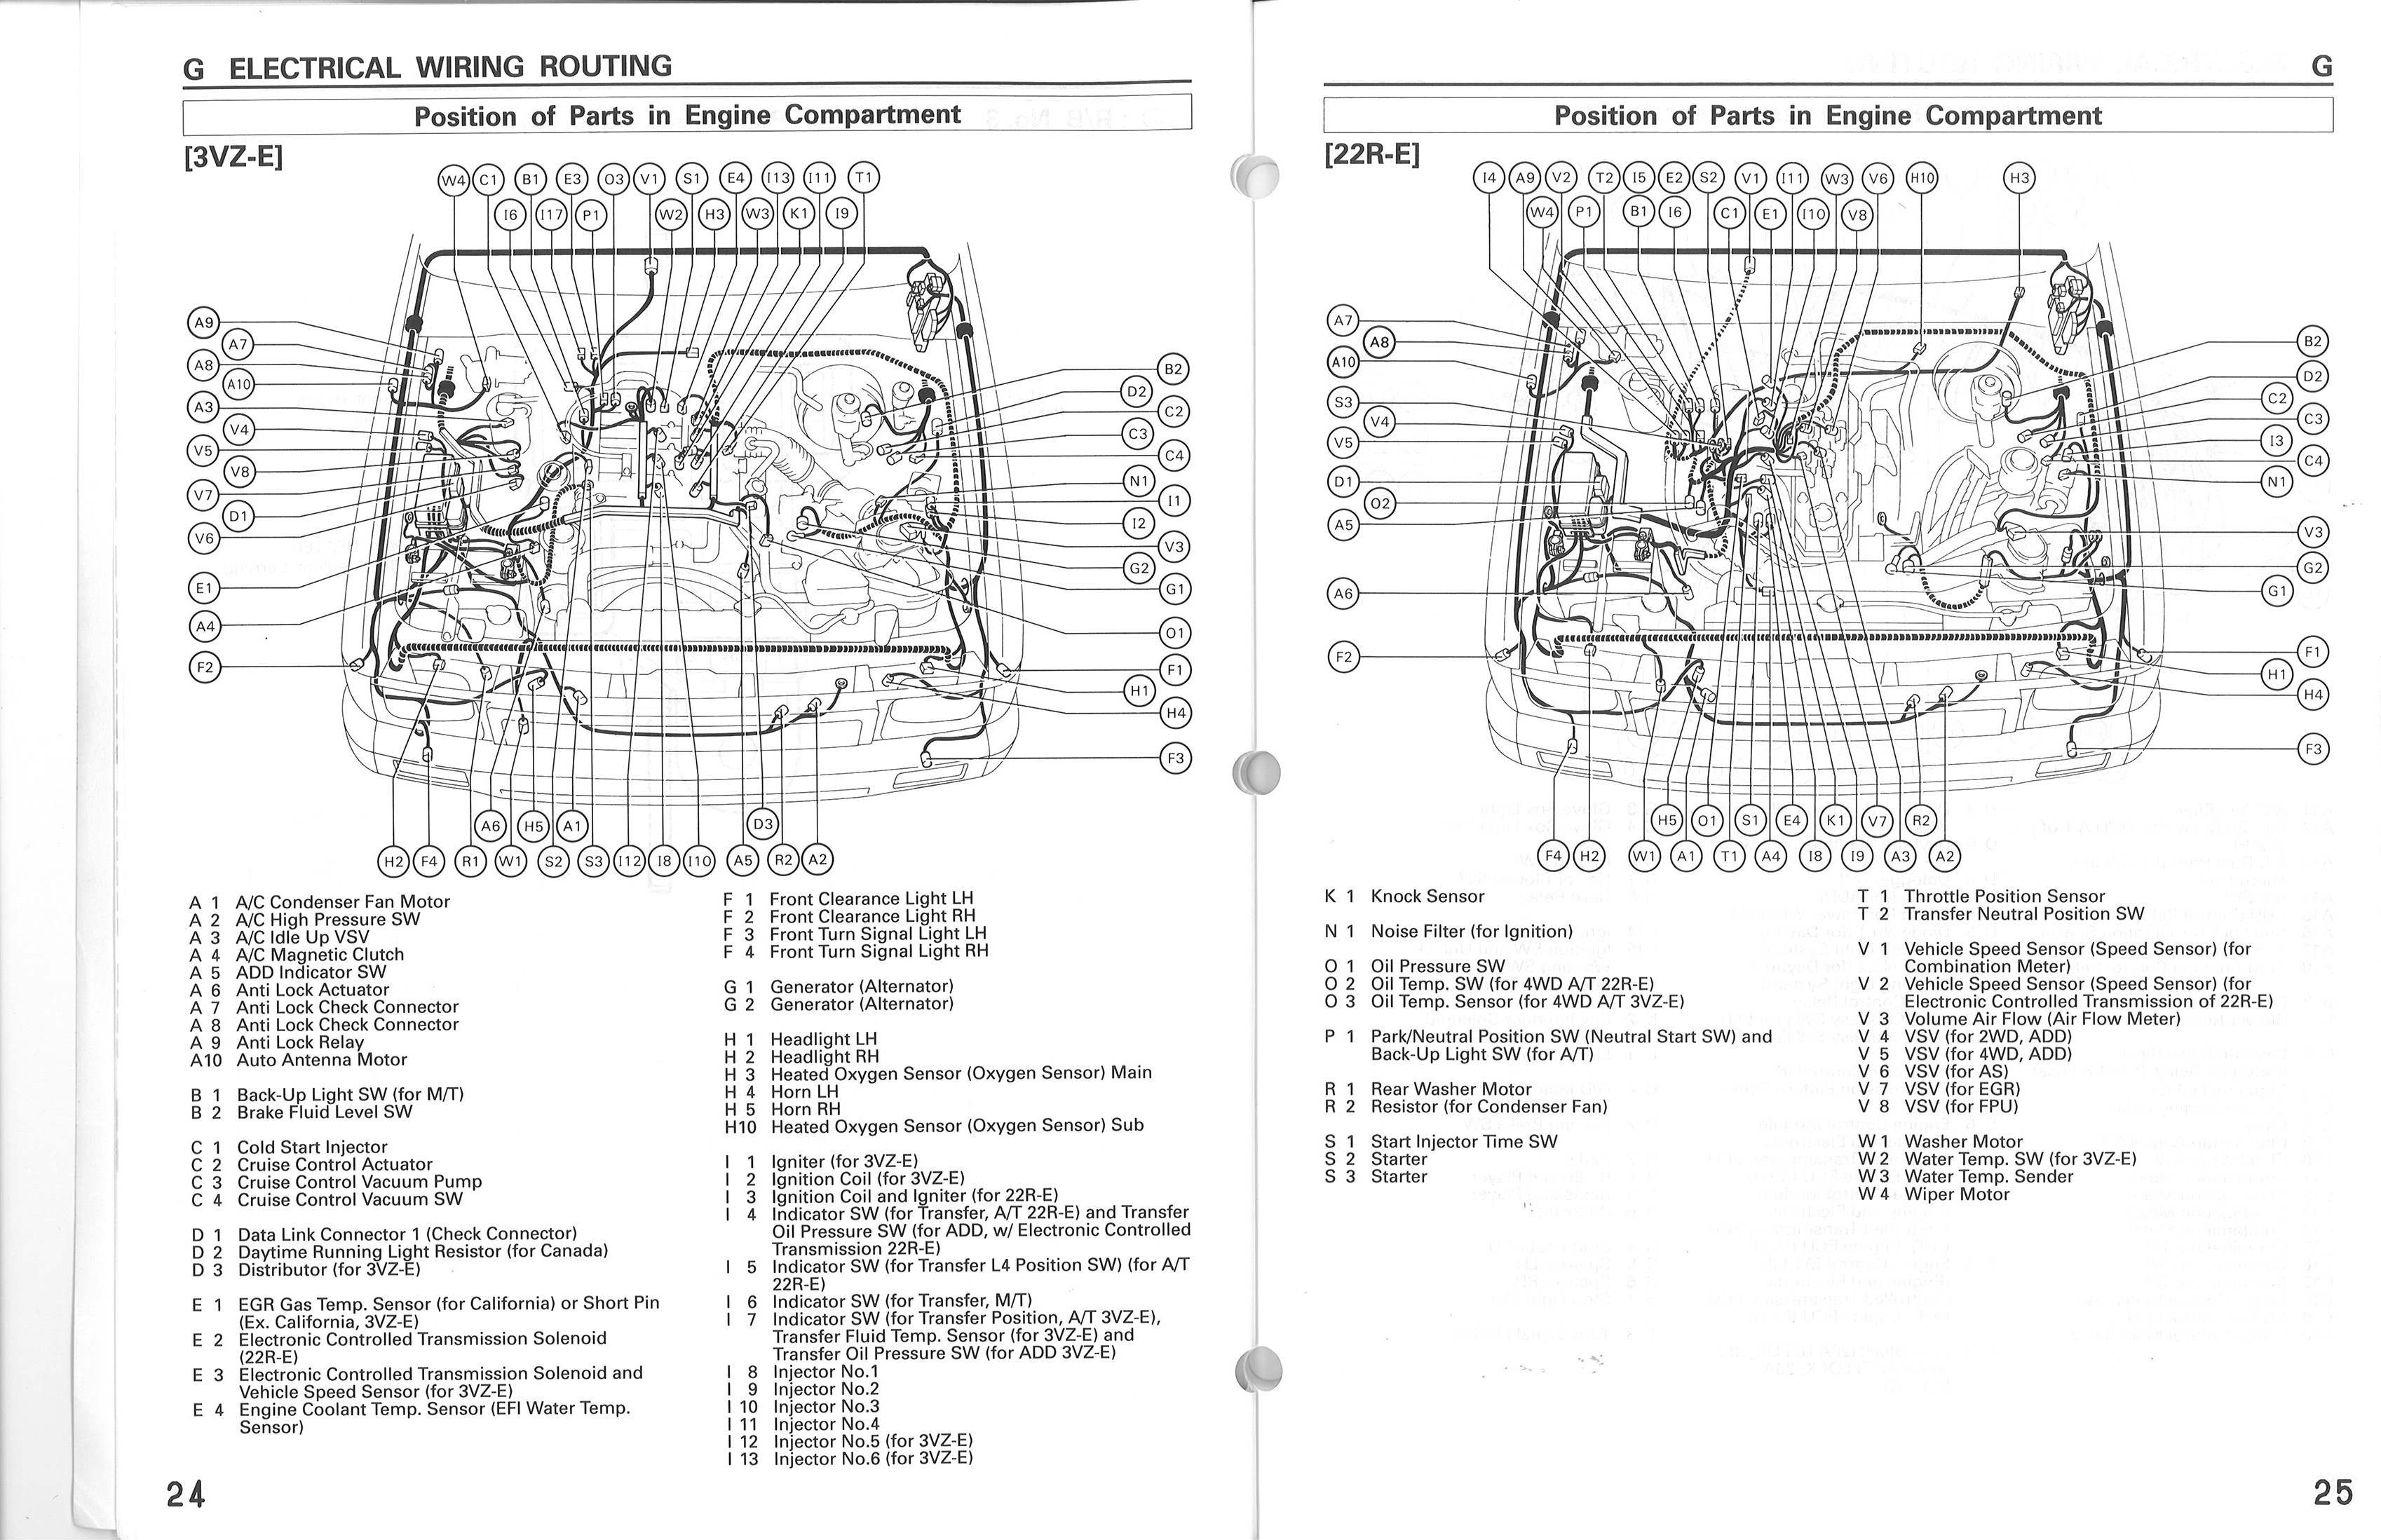 1988 toyota pickup wiring diagram 88 toyota pickup wiring diagram 22re wiring harness diagram 22re  88 toyota pickup wiring diagram 22re